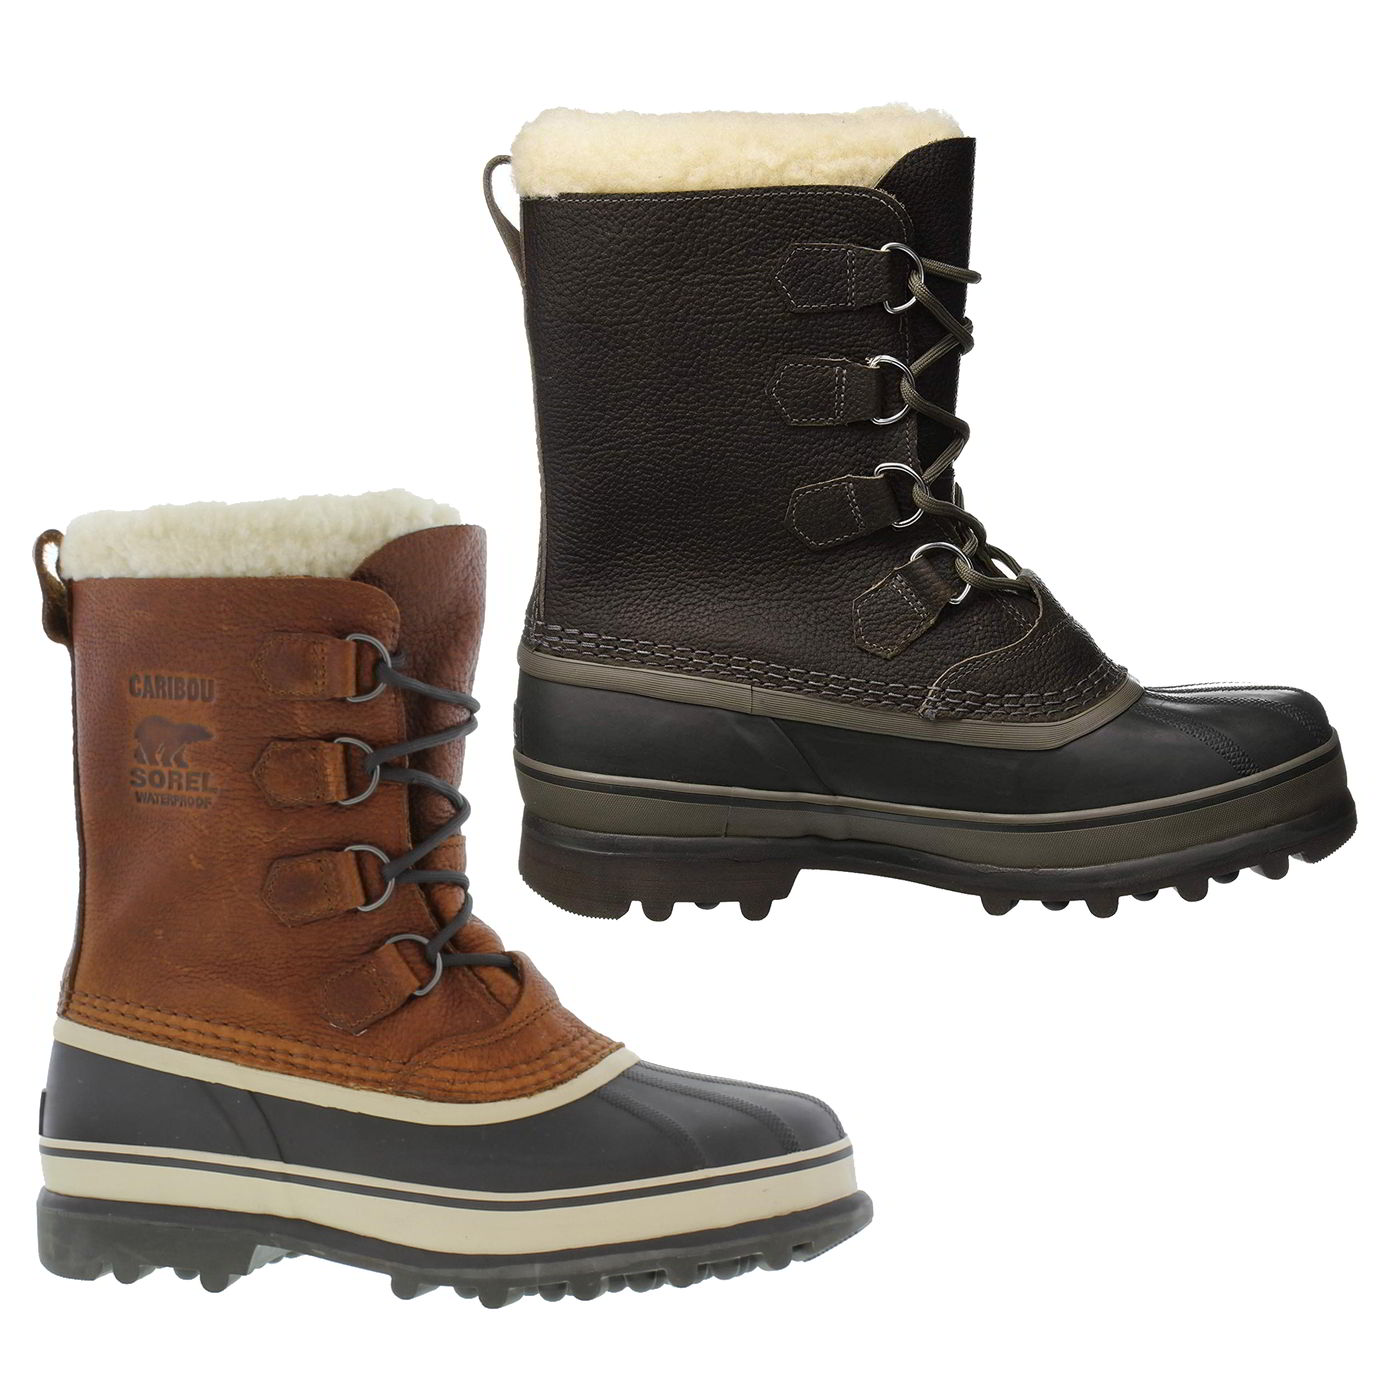 3739ca4a8d5e3 New Sorel Caribou Wool Mens Waterproof Brown Leather Snow Boots Size ...